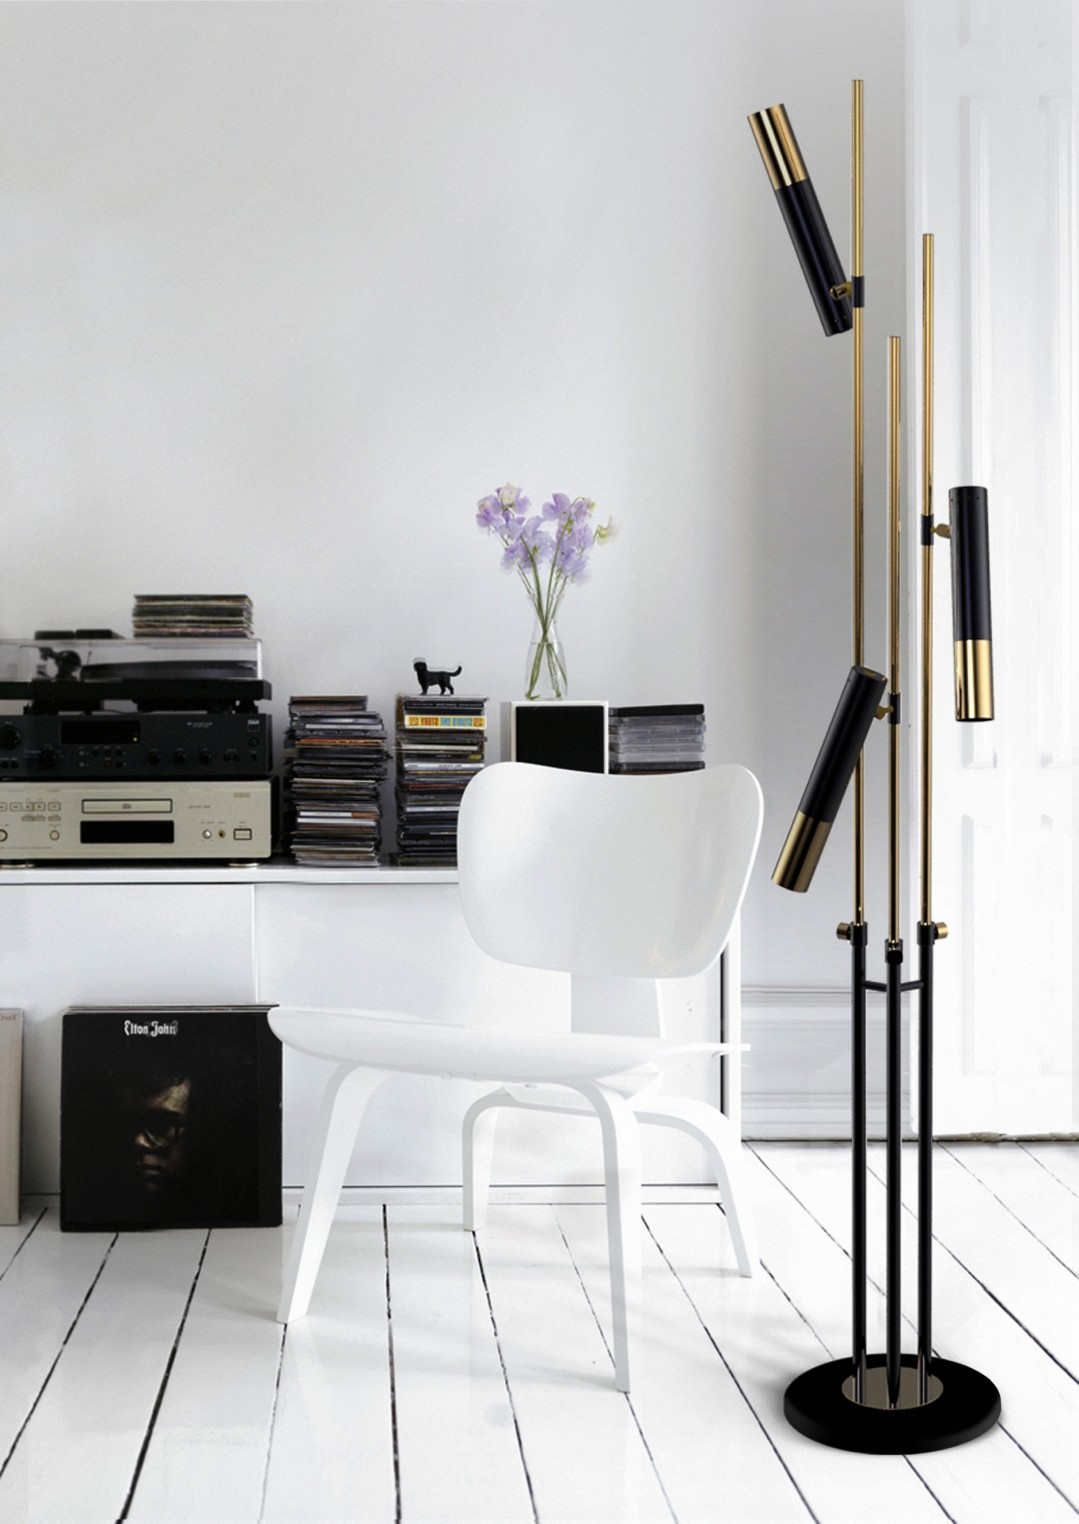 Maison et Objet 2020: A Travel in Time That You Can't Miss! maison et objet Maison et Objet 2020: A Travel in Time That You Can't Miss! Maison Object 2020 A Time Travel You Cant Miss 5